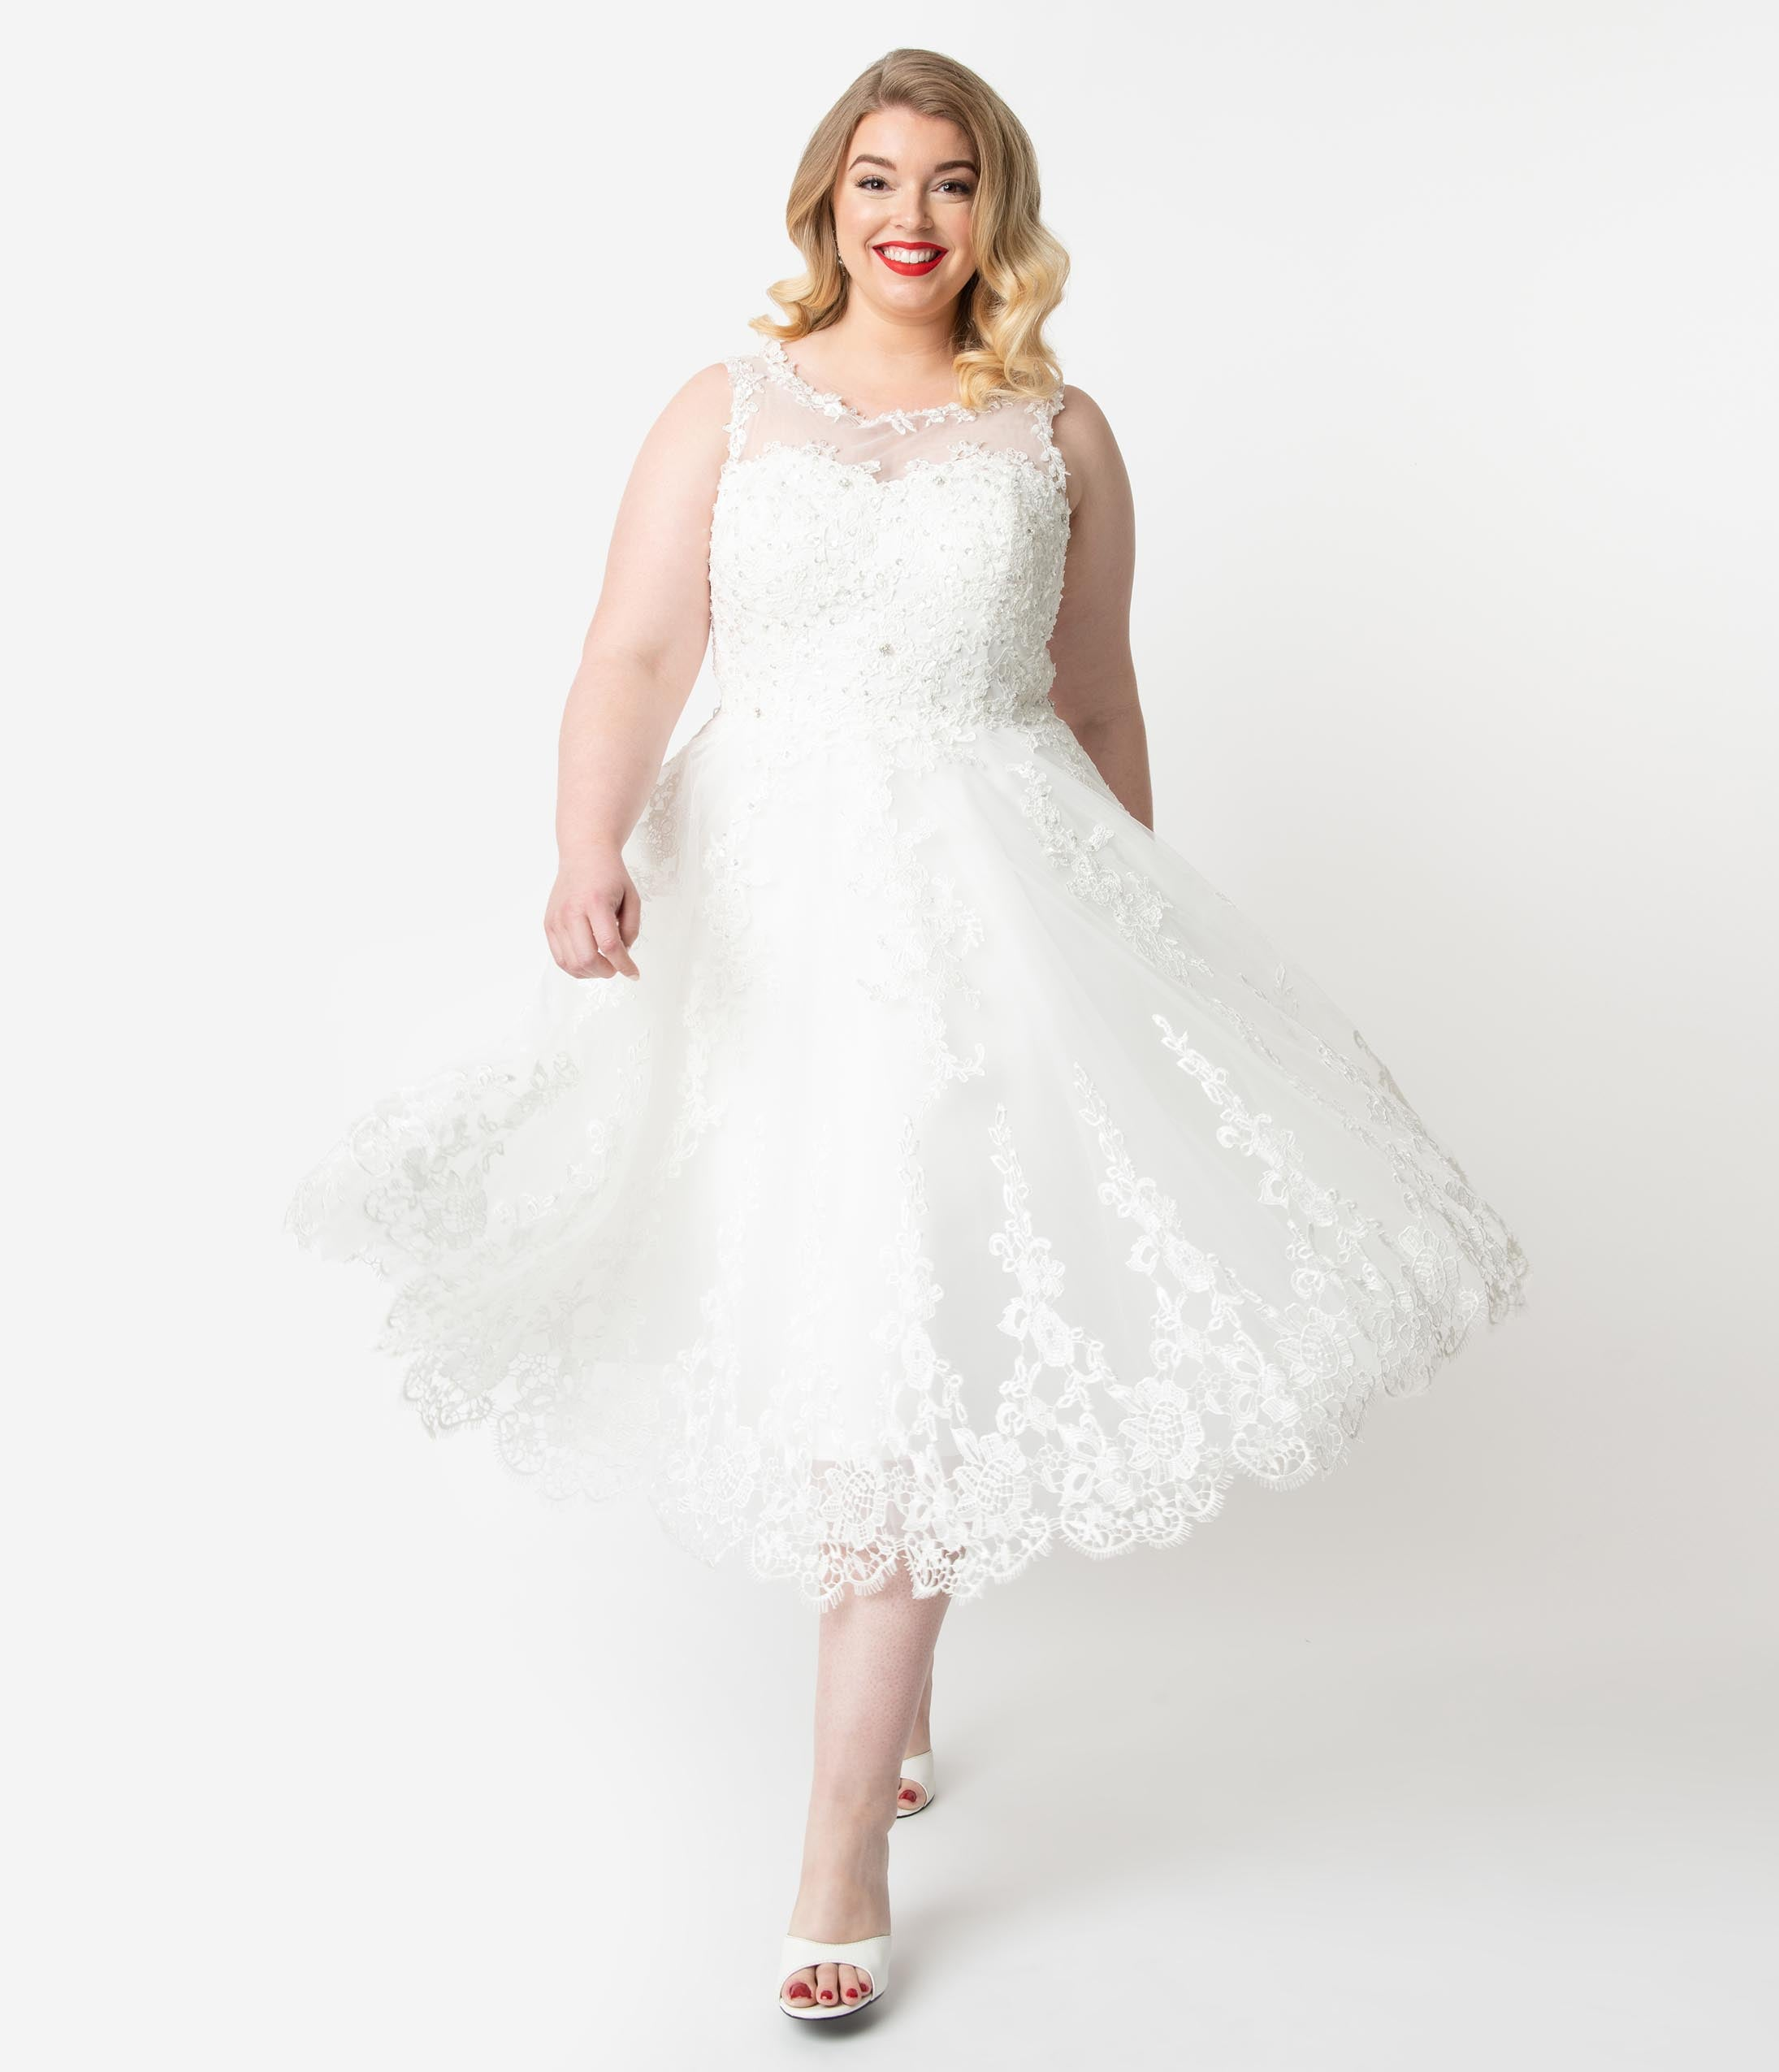 50s Wedding Dress, 1950s Style Wedding Dresses, Rockabilly Weddings Unique Vintage Plus Size 1950S Ivory Lace  Tulle Riviera Bridal Dress $228.00 AT vintagedancer.com